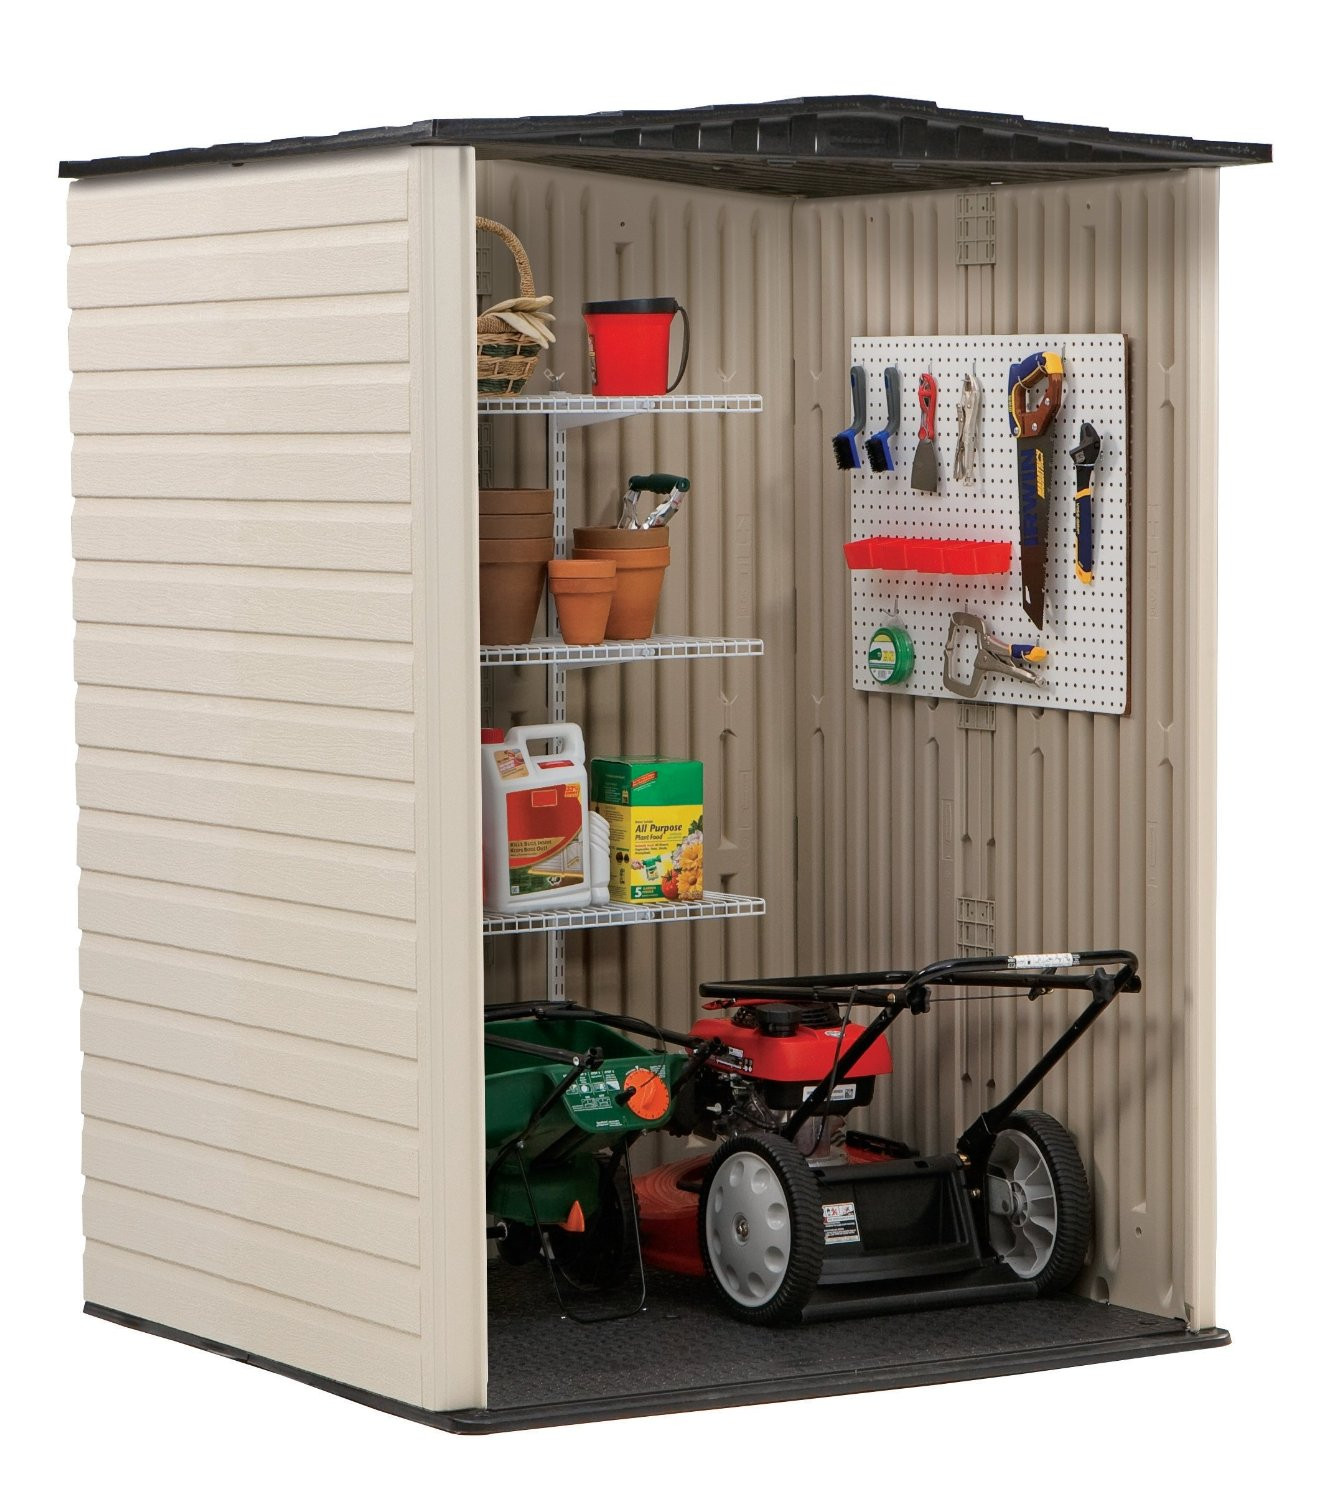 Best ideas about Rubbermaid Vertical Storage Shed . Save or Pin Rubbermaid Medium Vertical 106 Cu Ft Outdoor Storage Now.